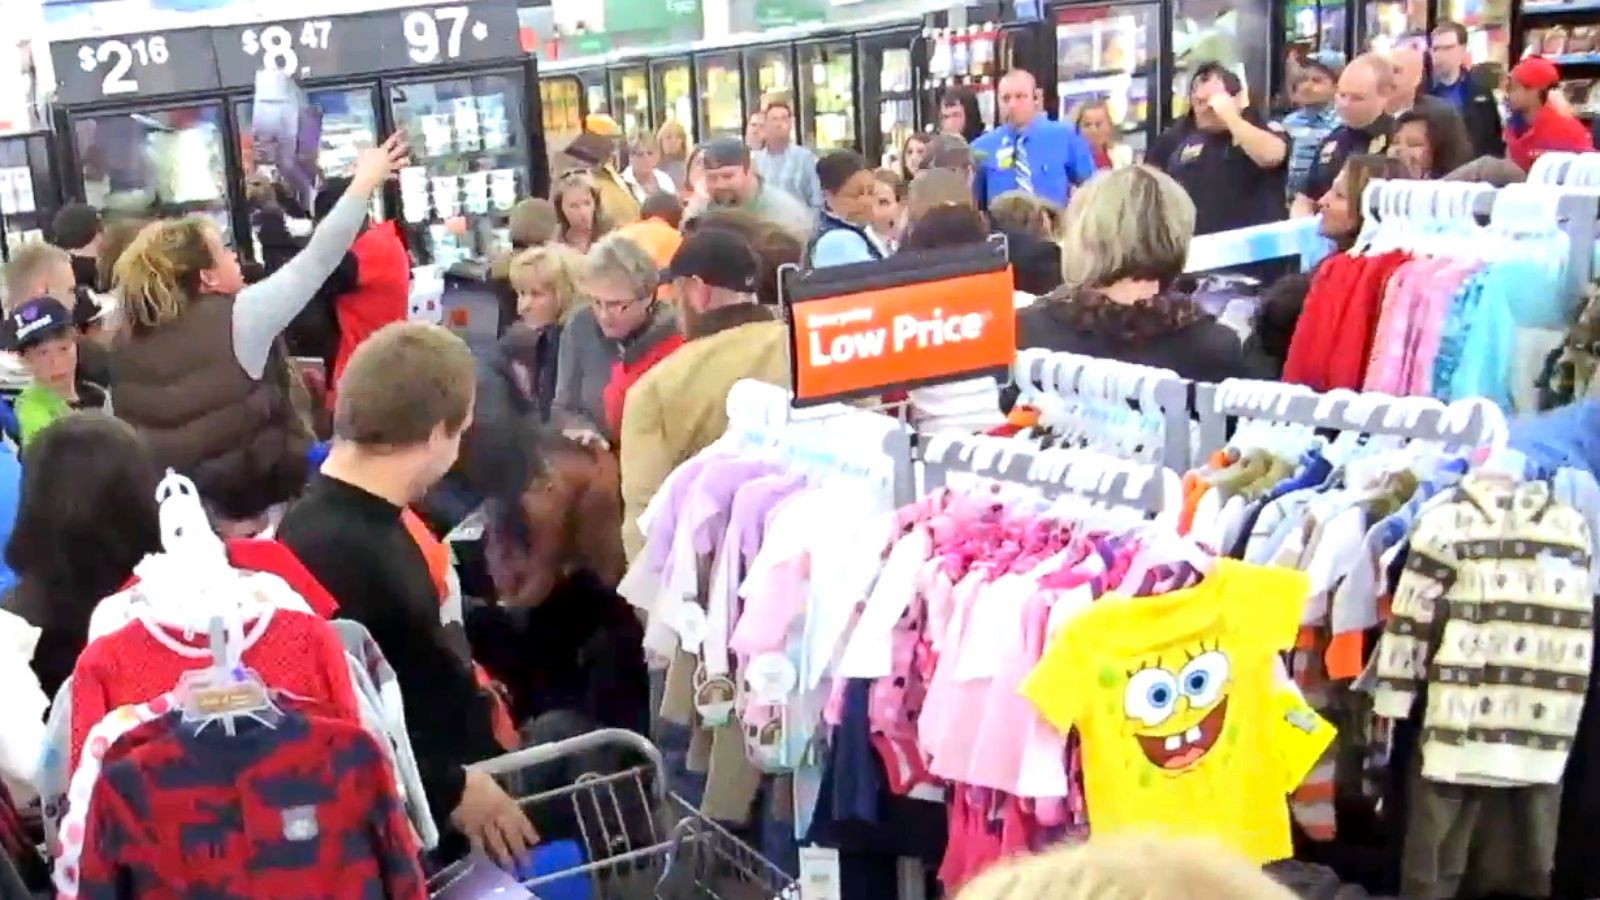 Black Friday Turns Dark As Twitter Websites Track Injuries Fights Deaths Abc News